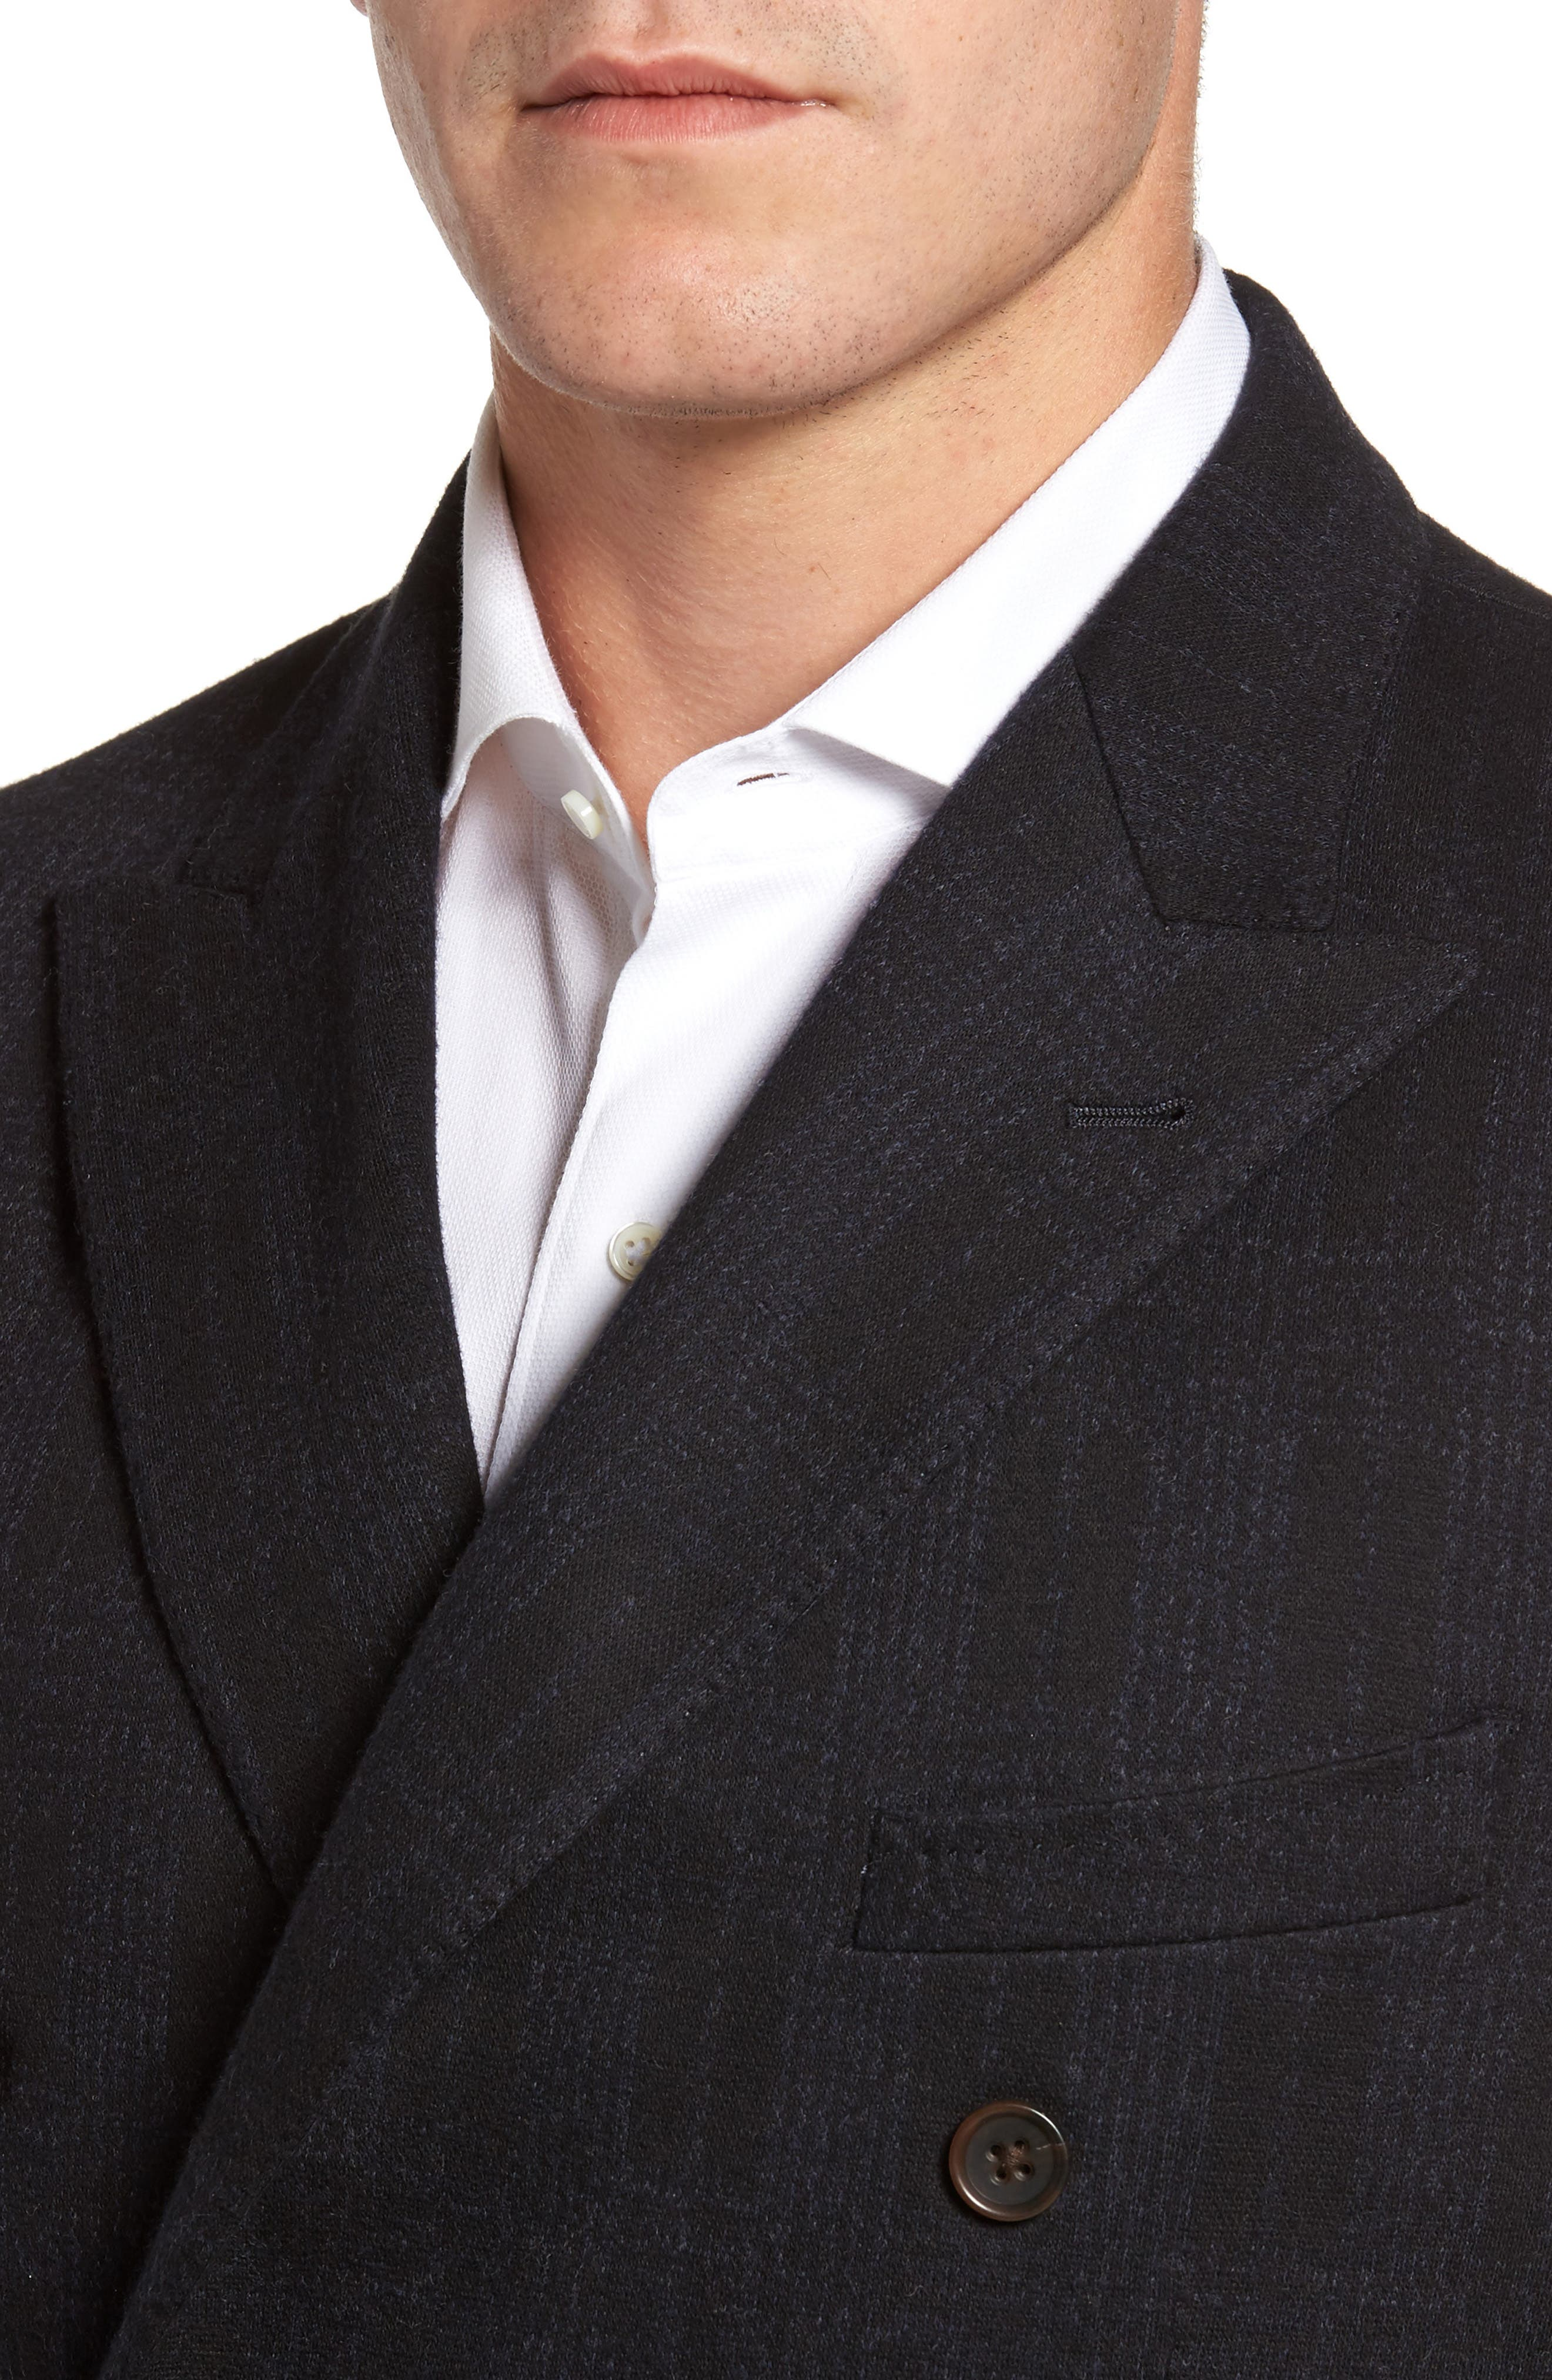 Classic Fit Jersey Double-Breasted Sport Coat,                             Alternate thumbnail 4, color,                             001